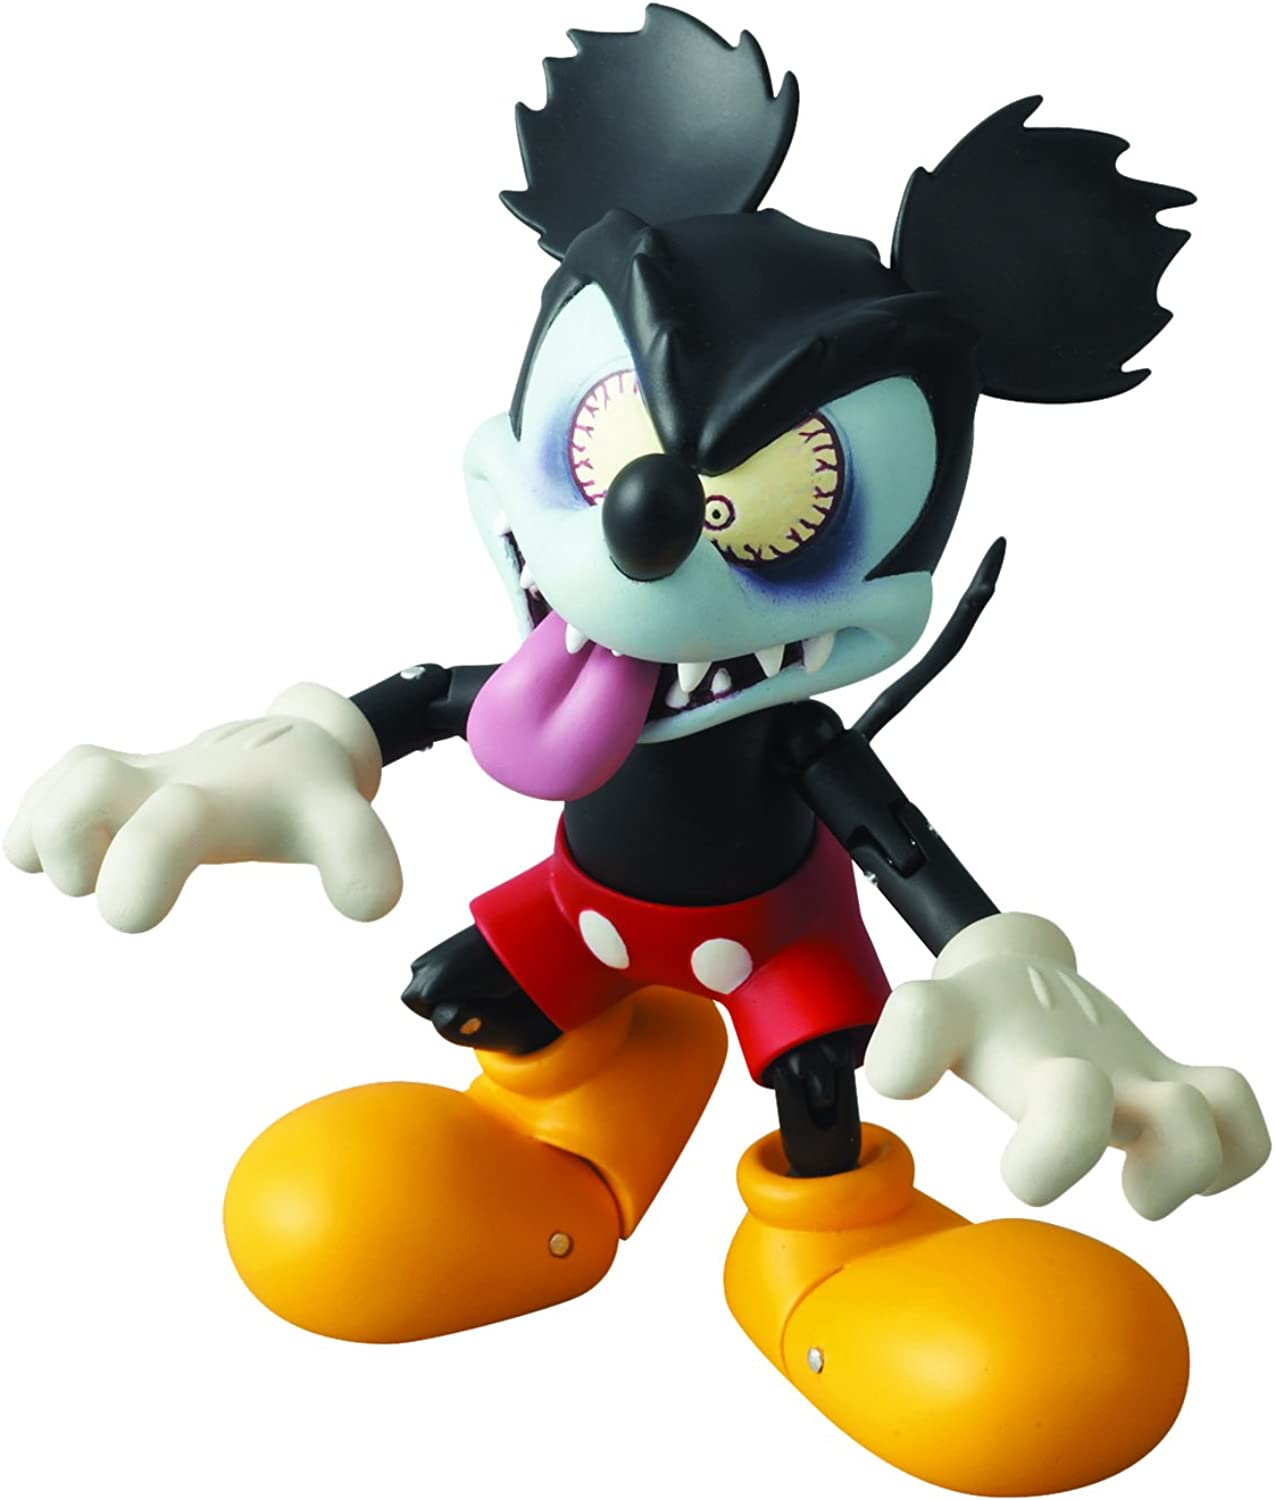 Medicom Mickey Mouse  Runaway Brain Miracle Action Figure